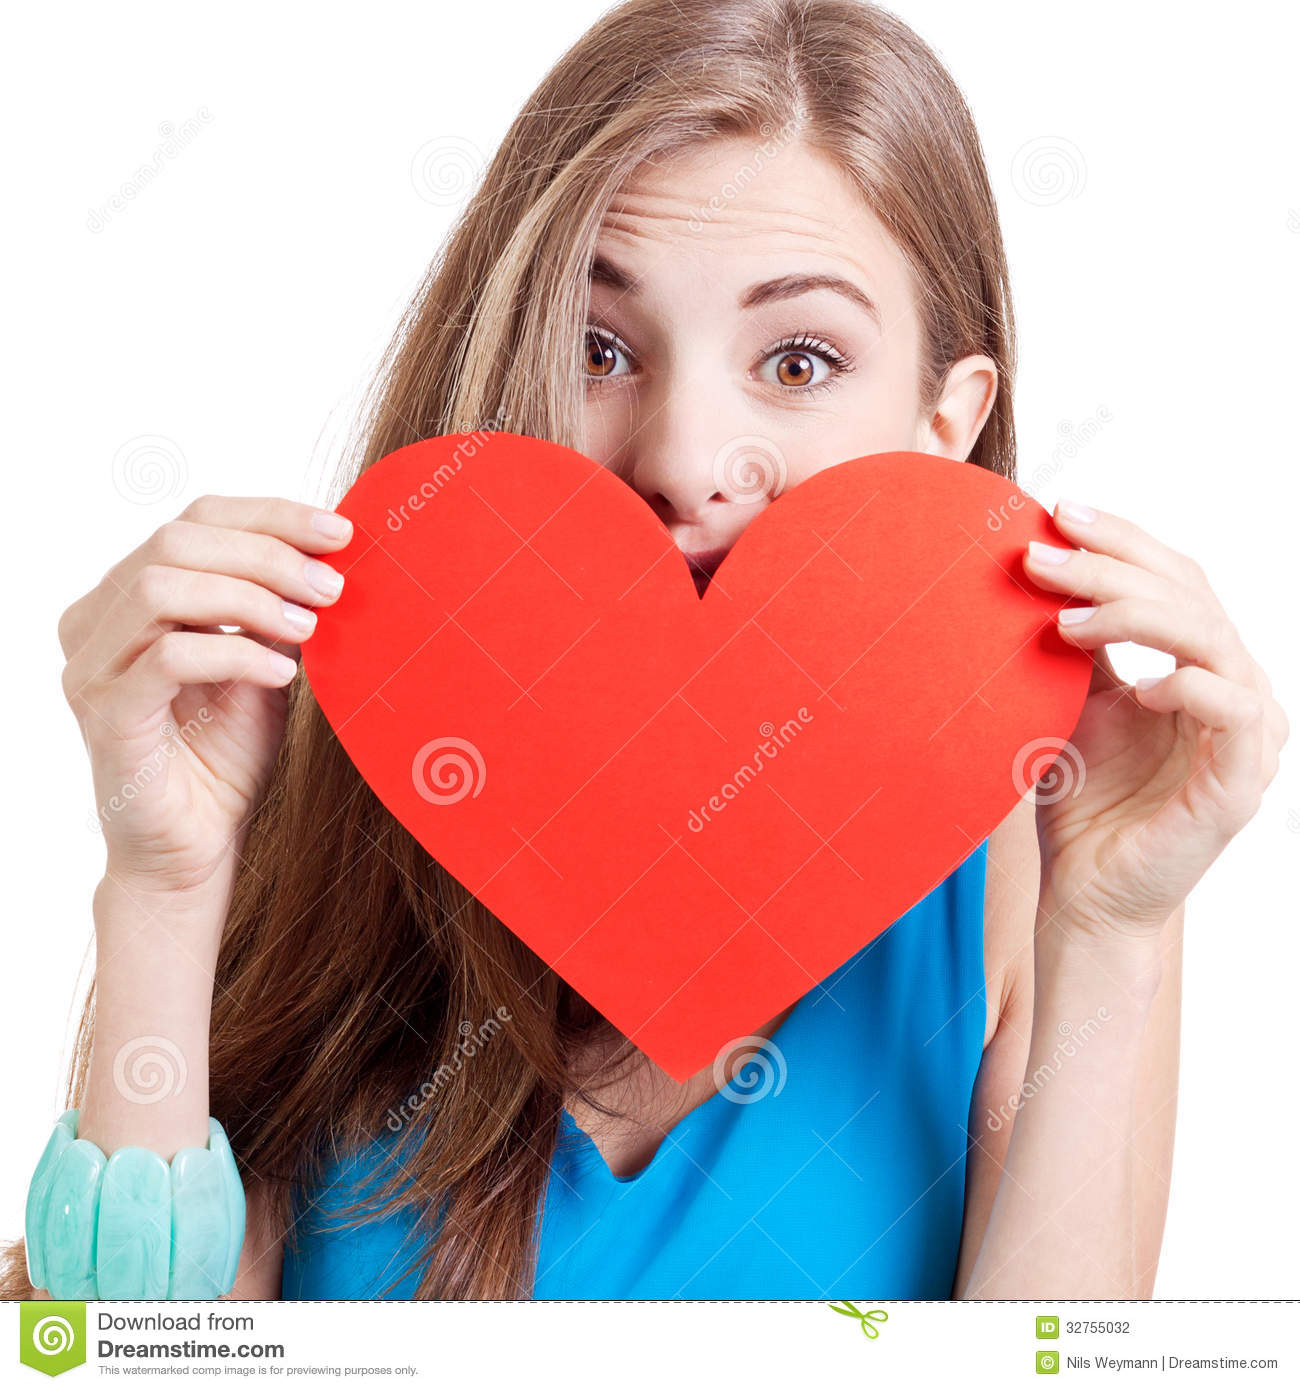 Smiling young woman and red heart love